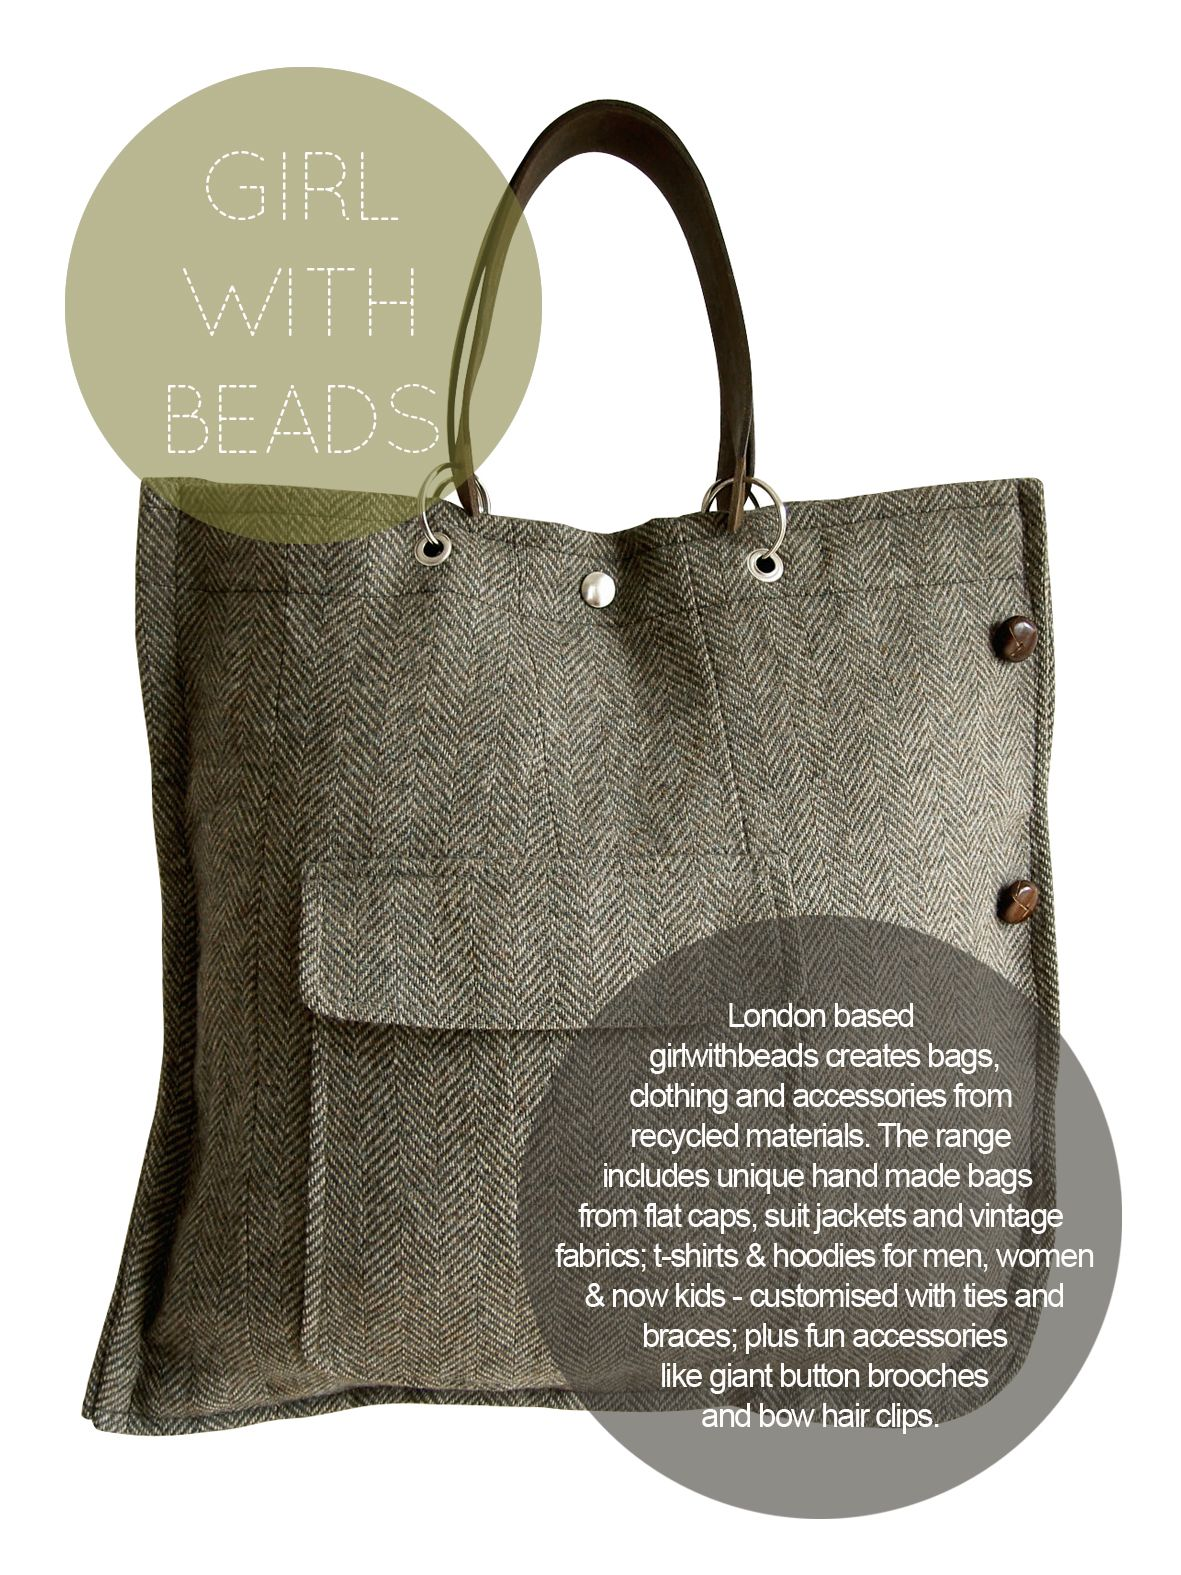 A bag made of leather from to jackets | Syning taske, Taske